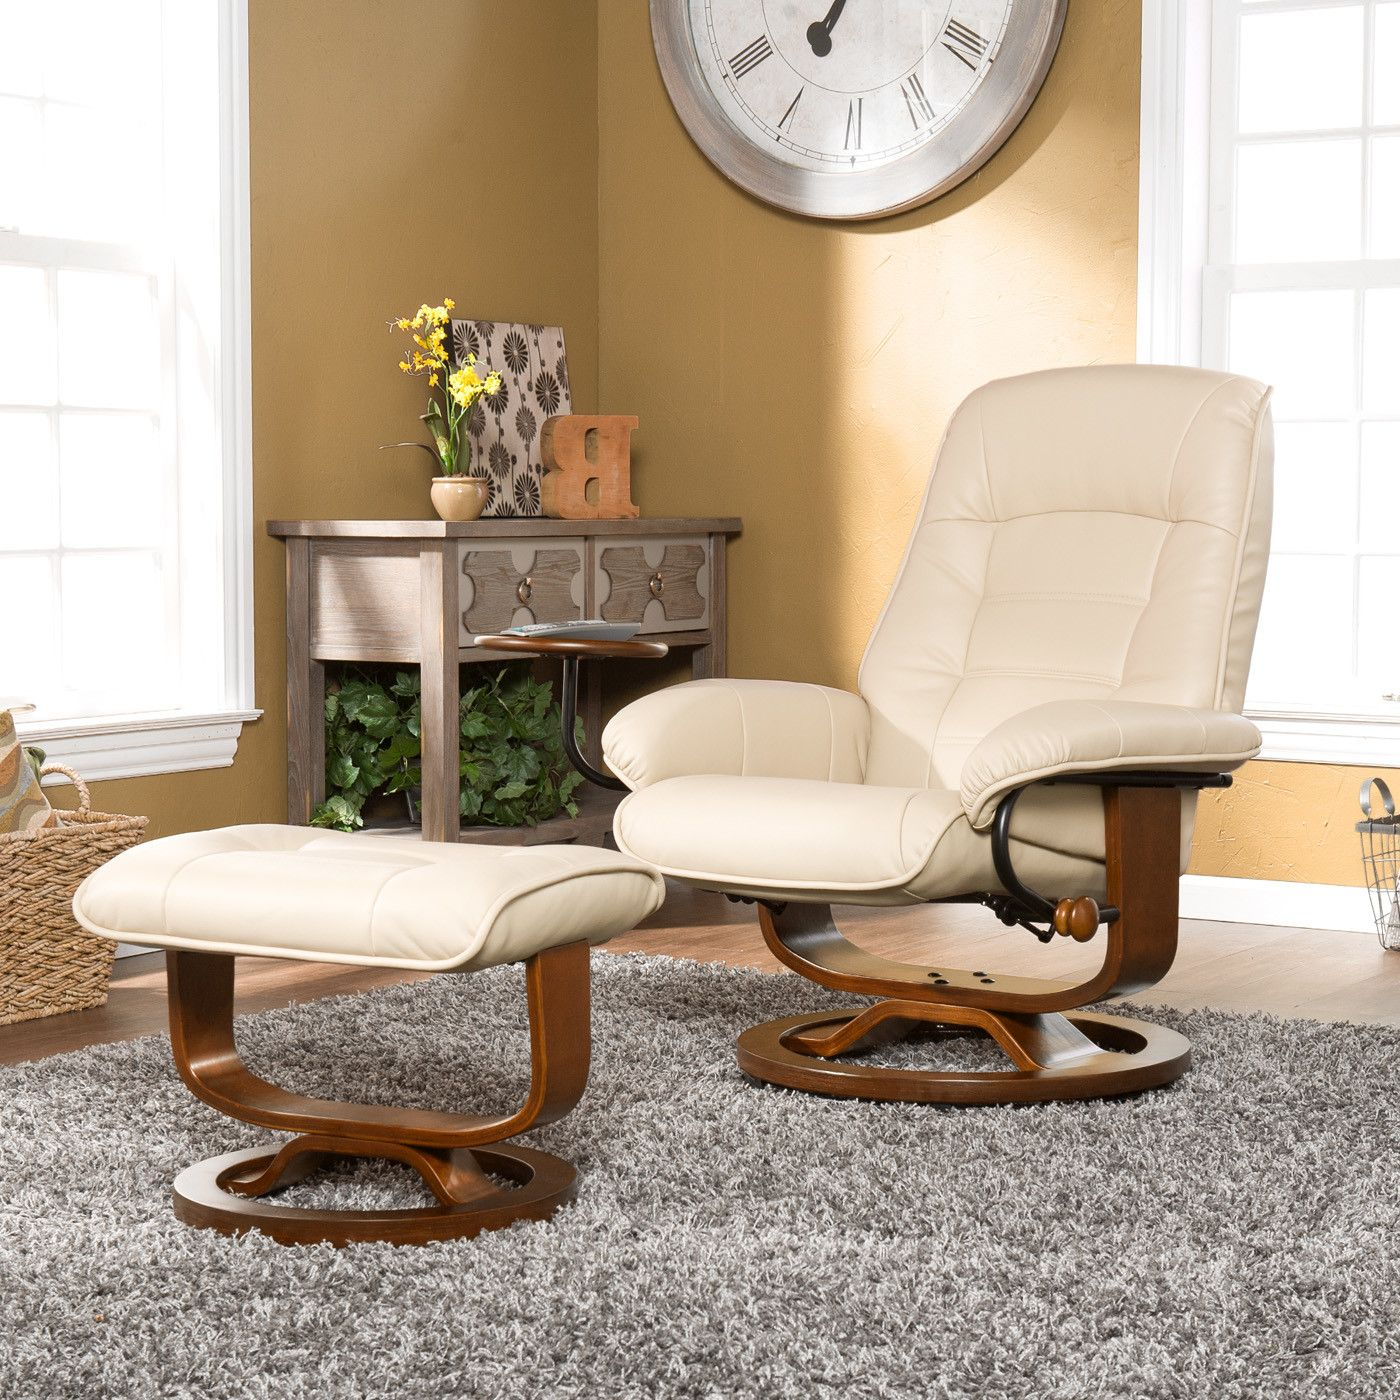 Verlene Grove Manual Recliner Recliner with ottoman